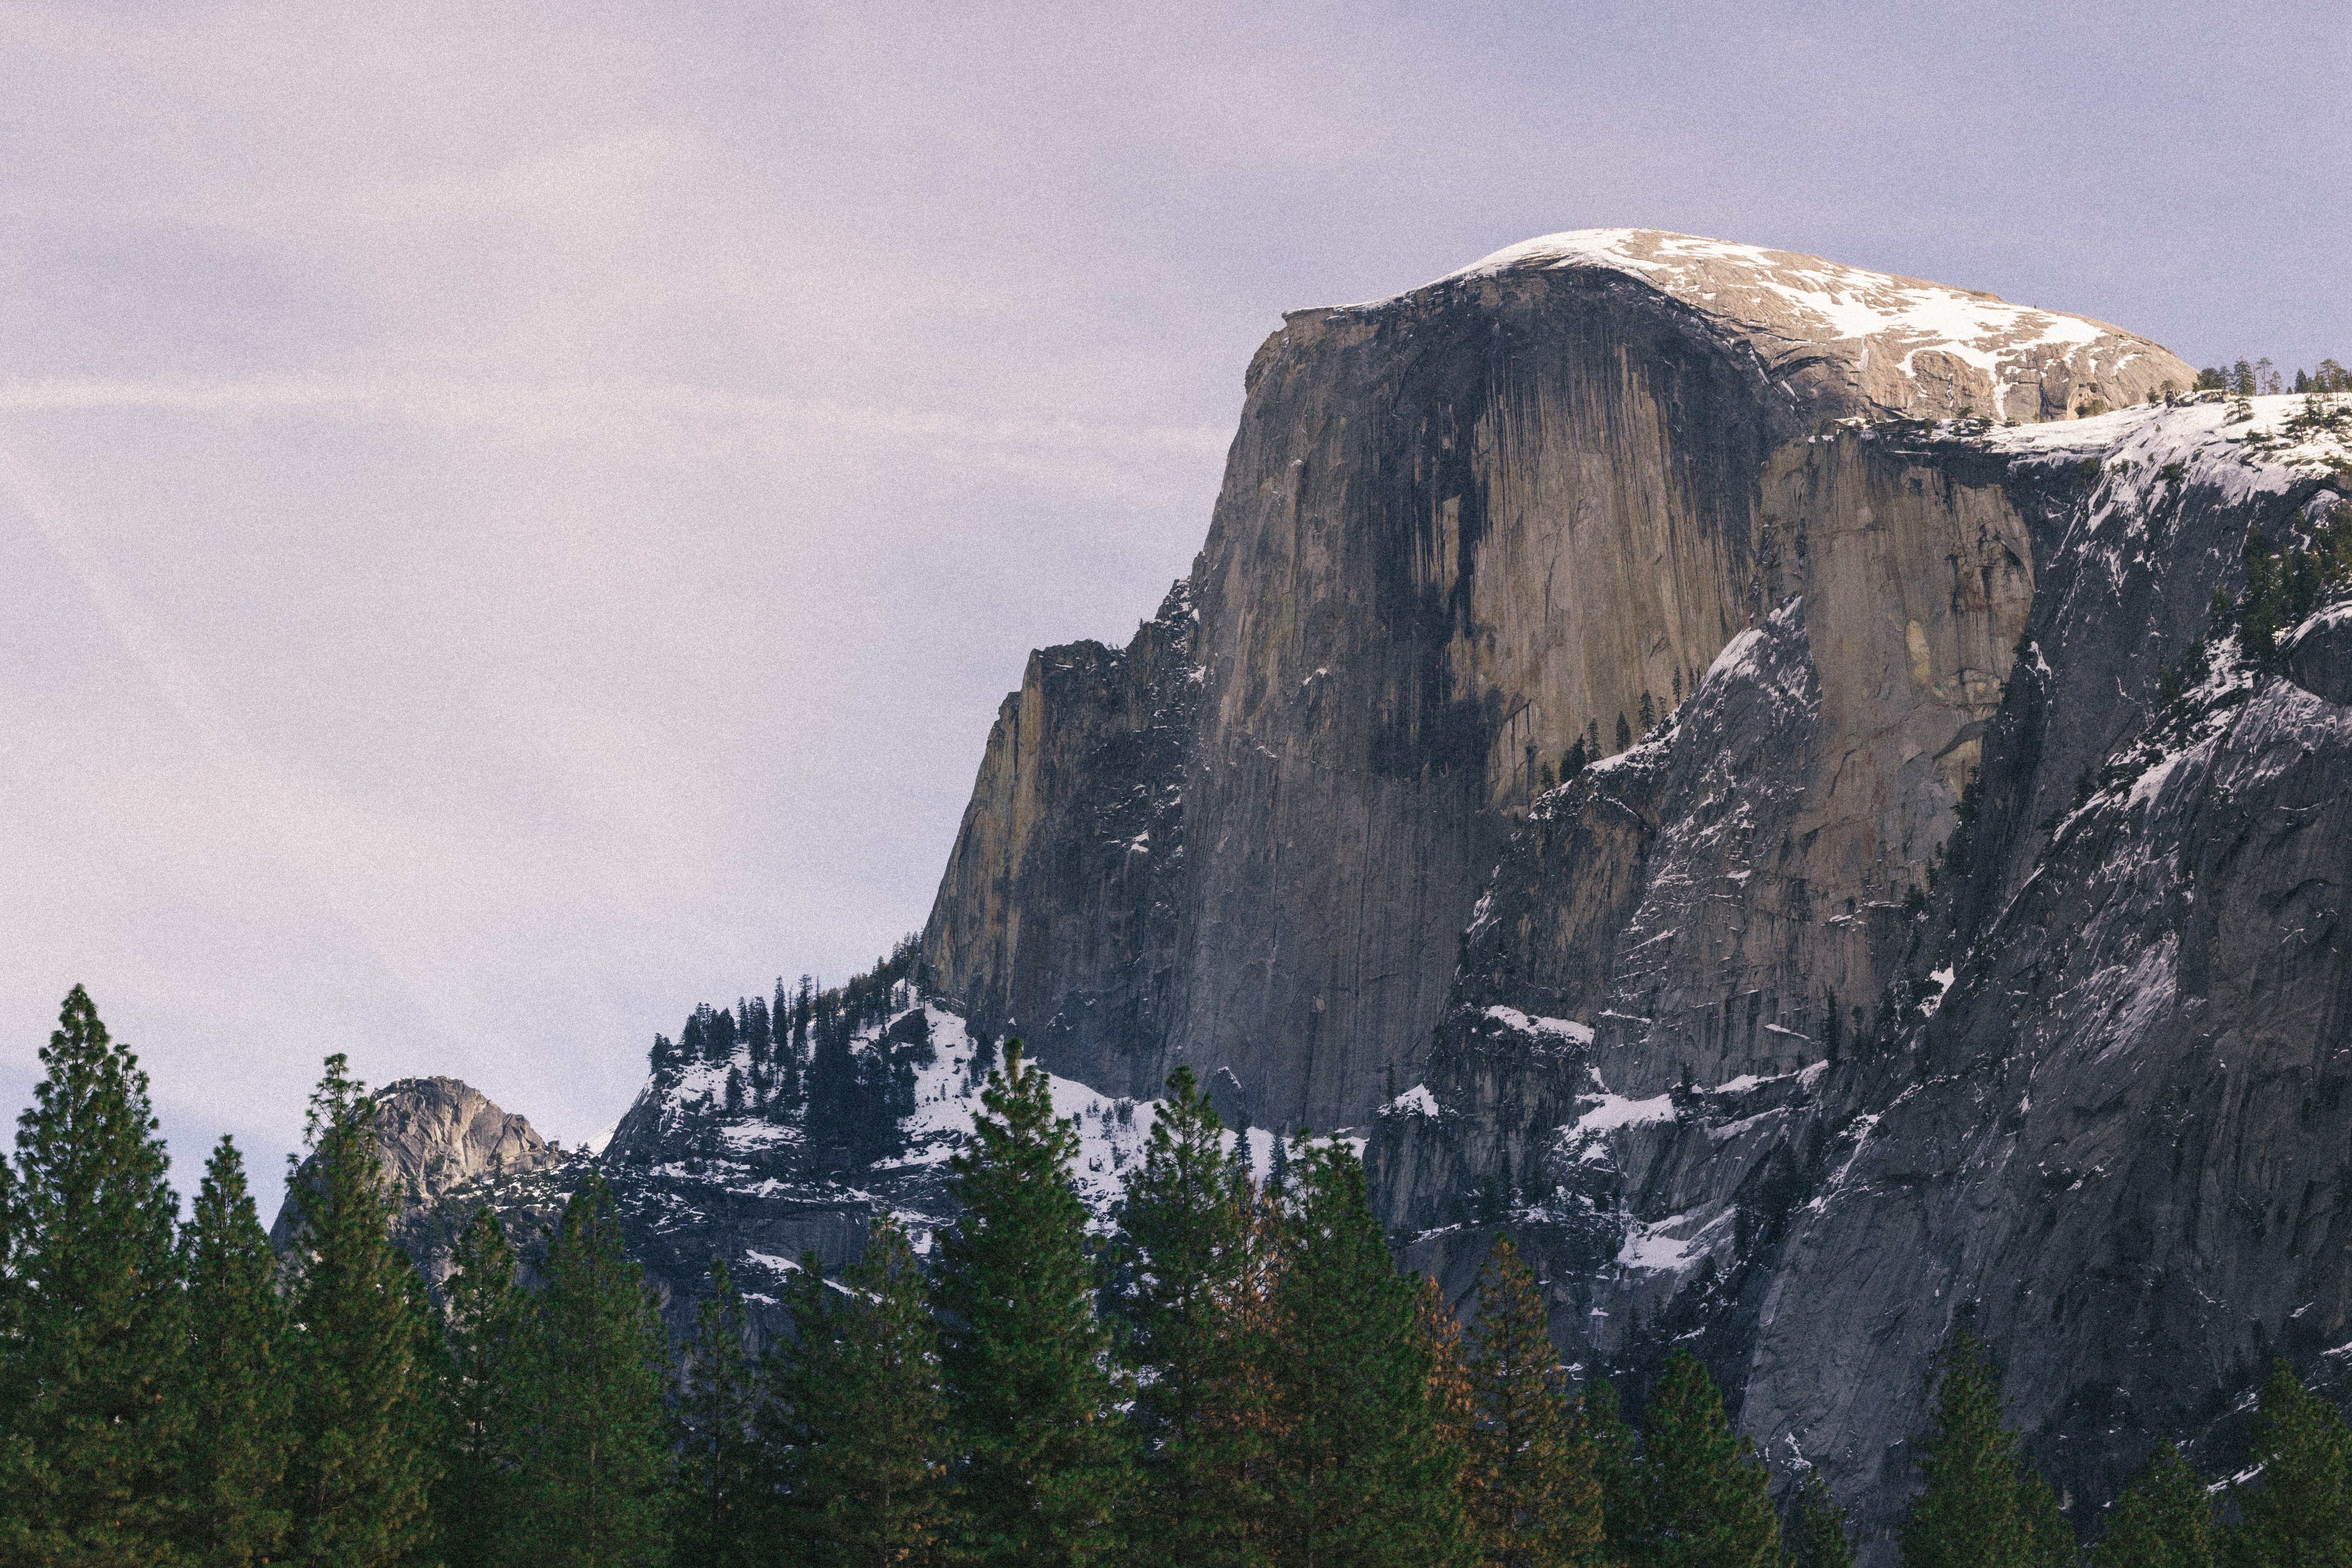 Snow dusted mountain tops next to a forest of trees in Yosemite Valley.